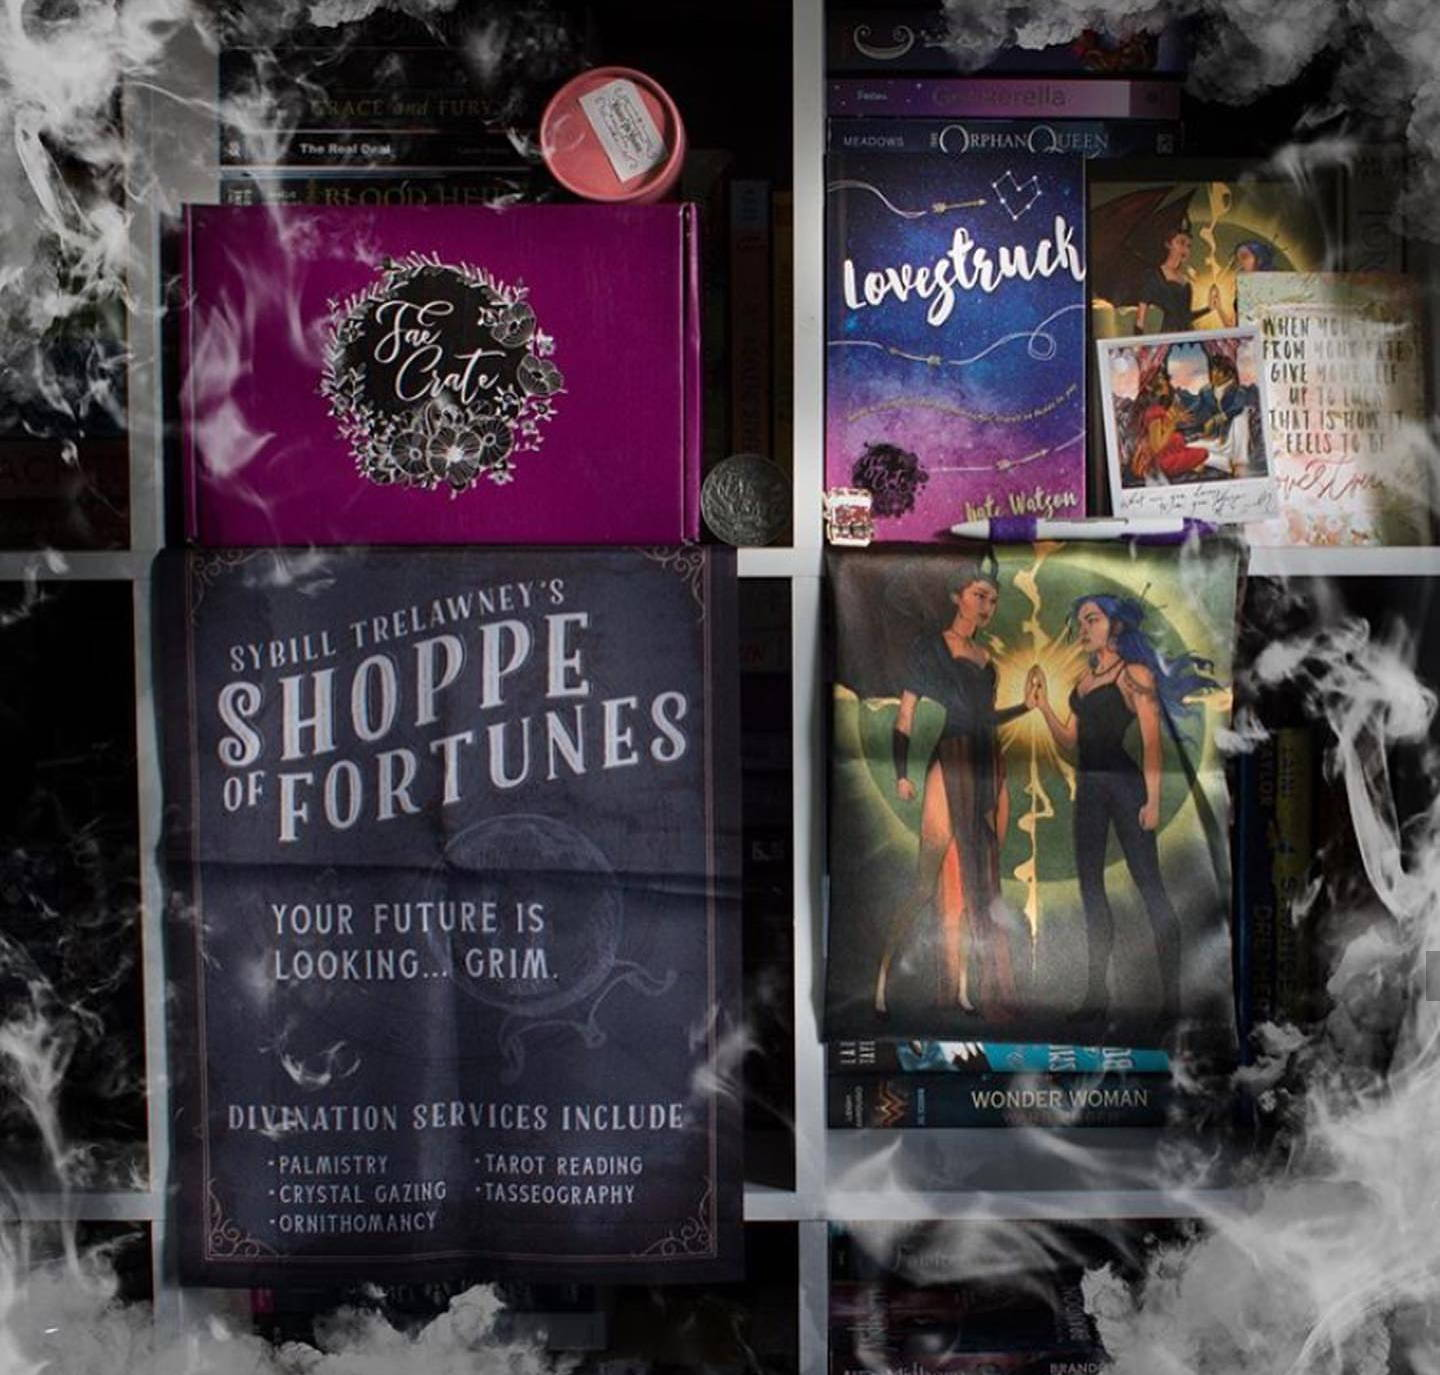 May 2019 Fate's Design box theme included Fae Crate Exclusive Cover of Lovestruck by Kate Watson, E-Book Download of Imber by @tyffany.h, Sybill Trelawney's Shoppe of Fortunes Flag, A Darker Shad of Magic Collector's Coin, TBR Pen, Daughter of Smoke and Bone Slip, Magnus Themed Incense, The Wrath and the Dawn Polaroid, Furyborn Enamel Necklace Charm, and Eragon Shirt for Seelie and Solitary Fae boxes only.